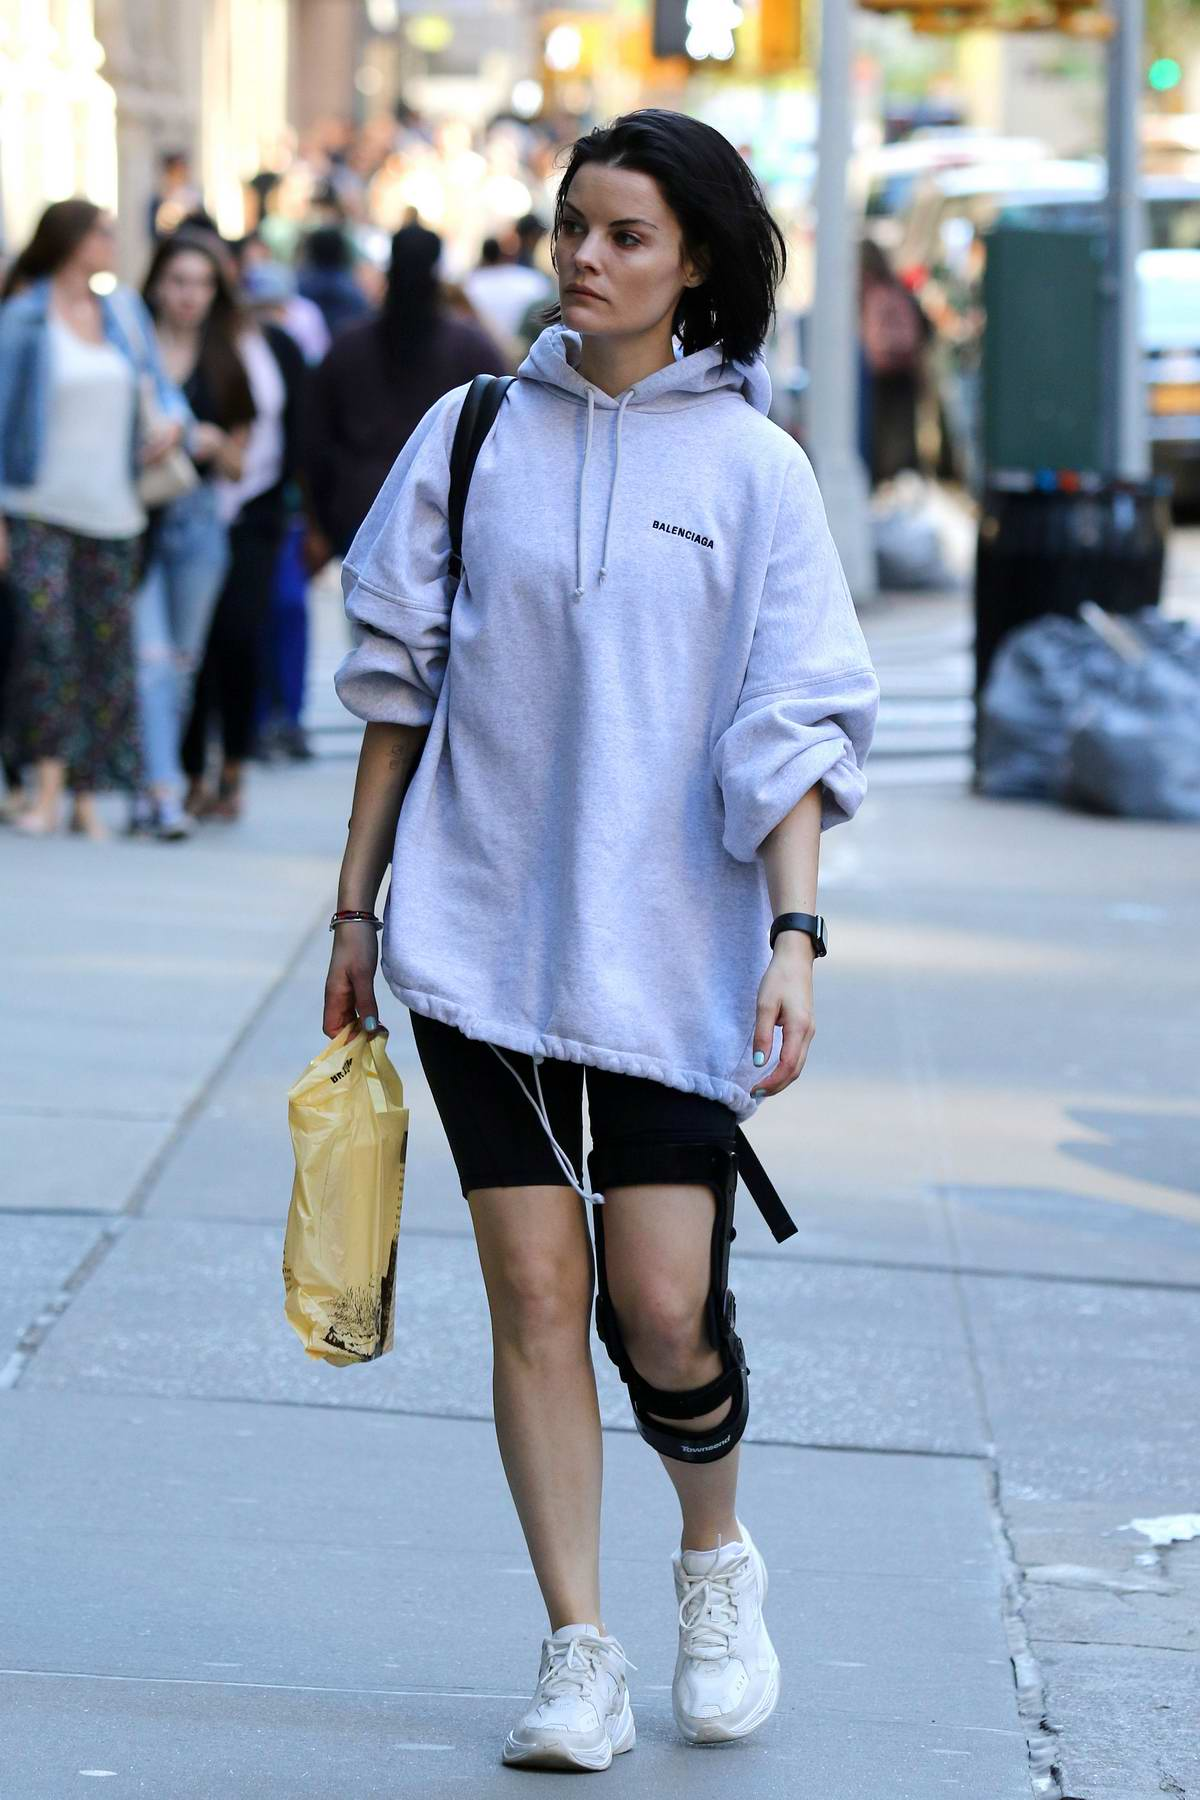 Jaimie Alexander rocks a Balenciaga hoodie and black shorts with a knee brace while out shopping for books in New York City